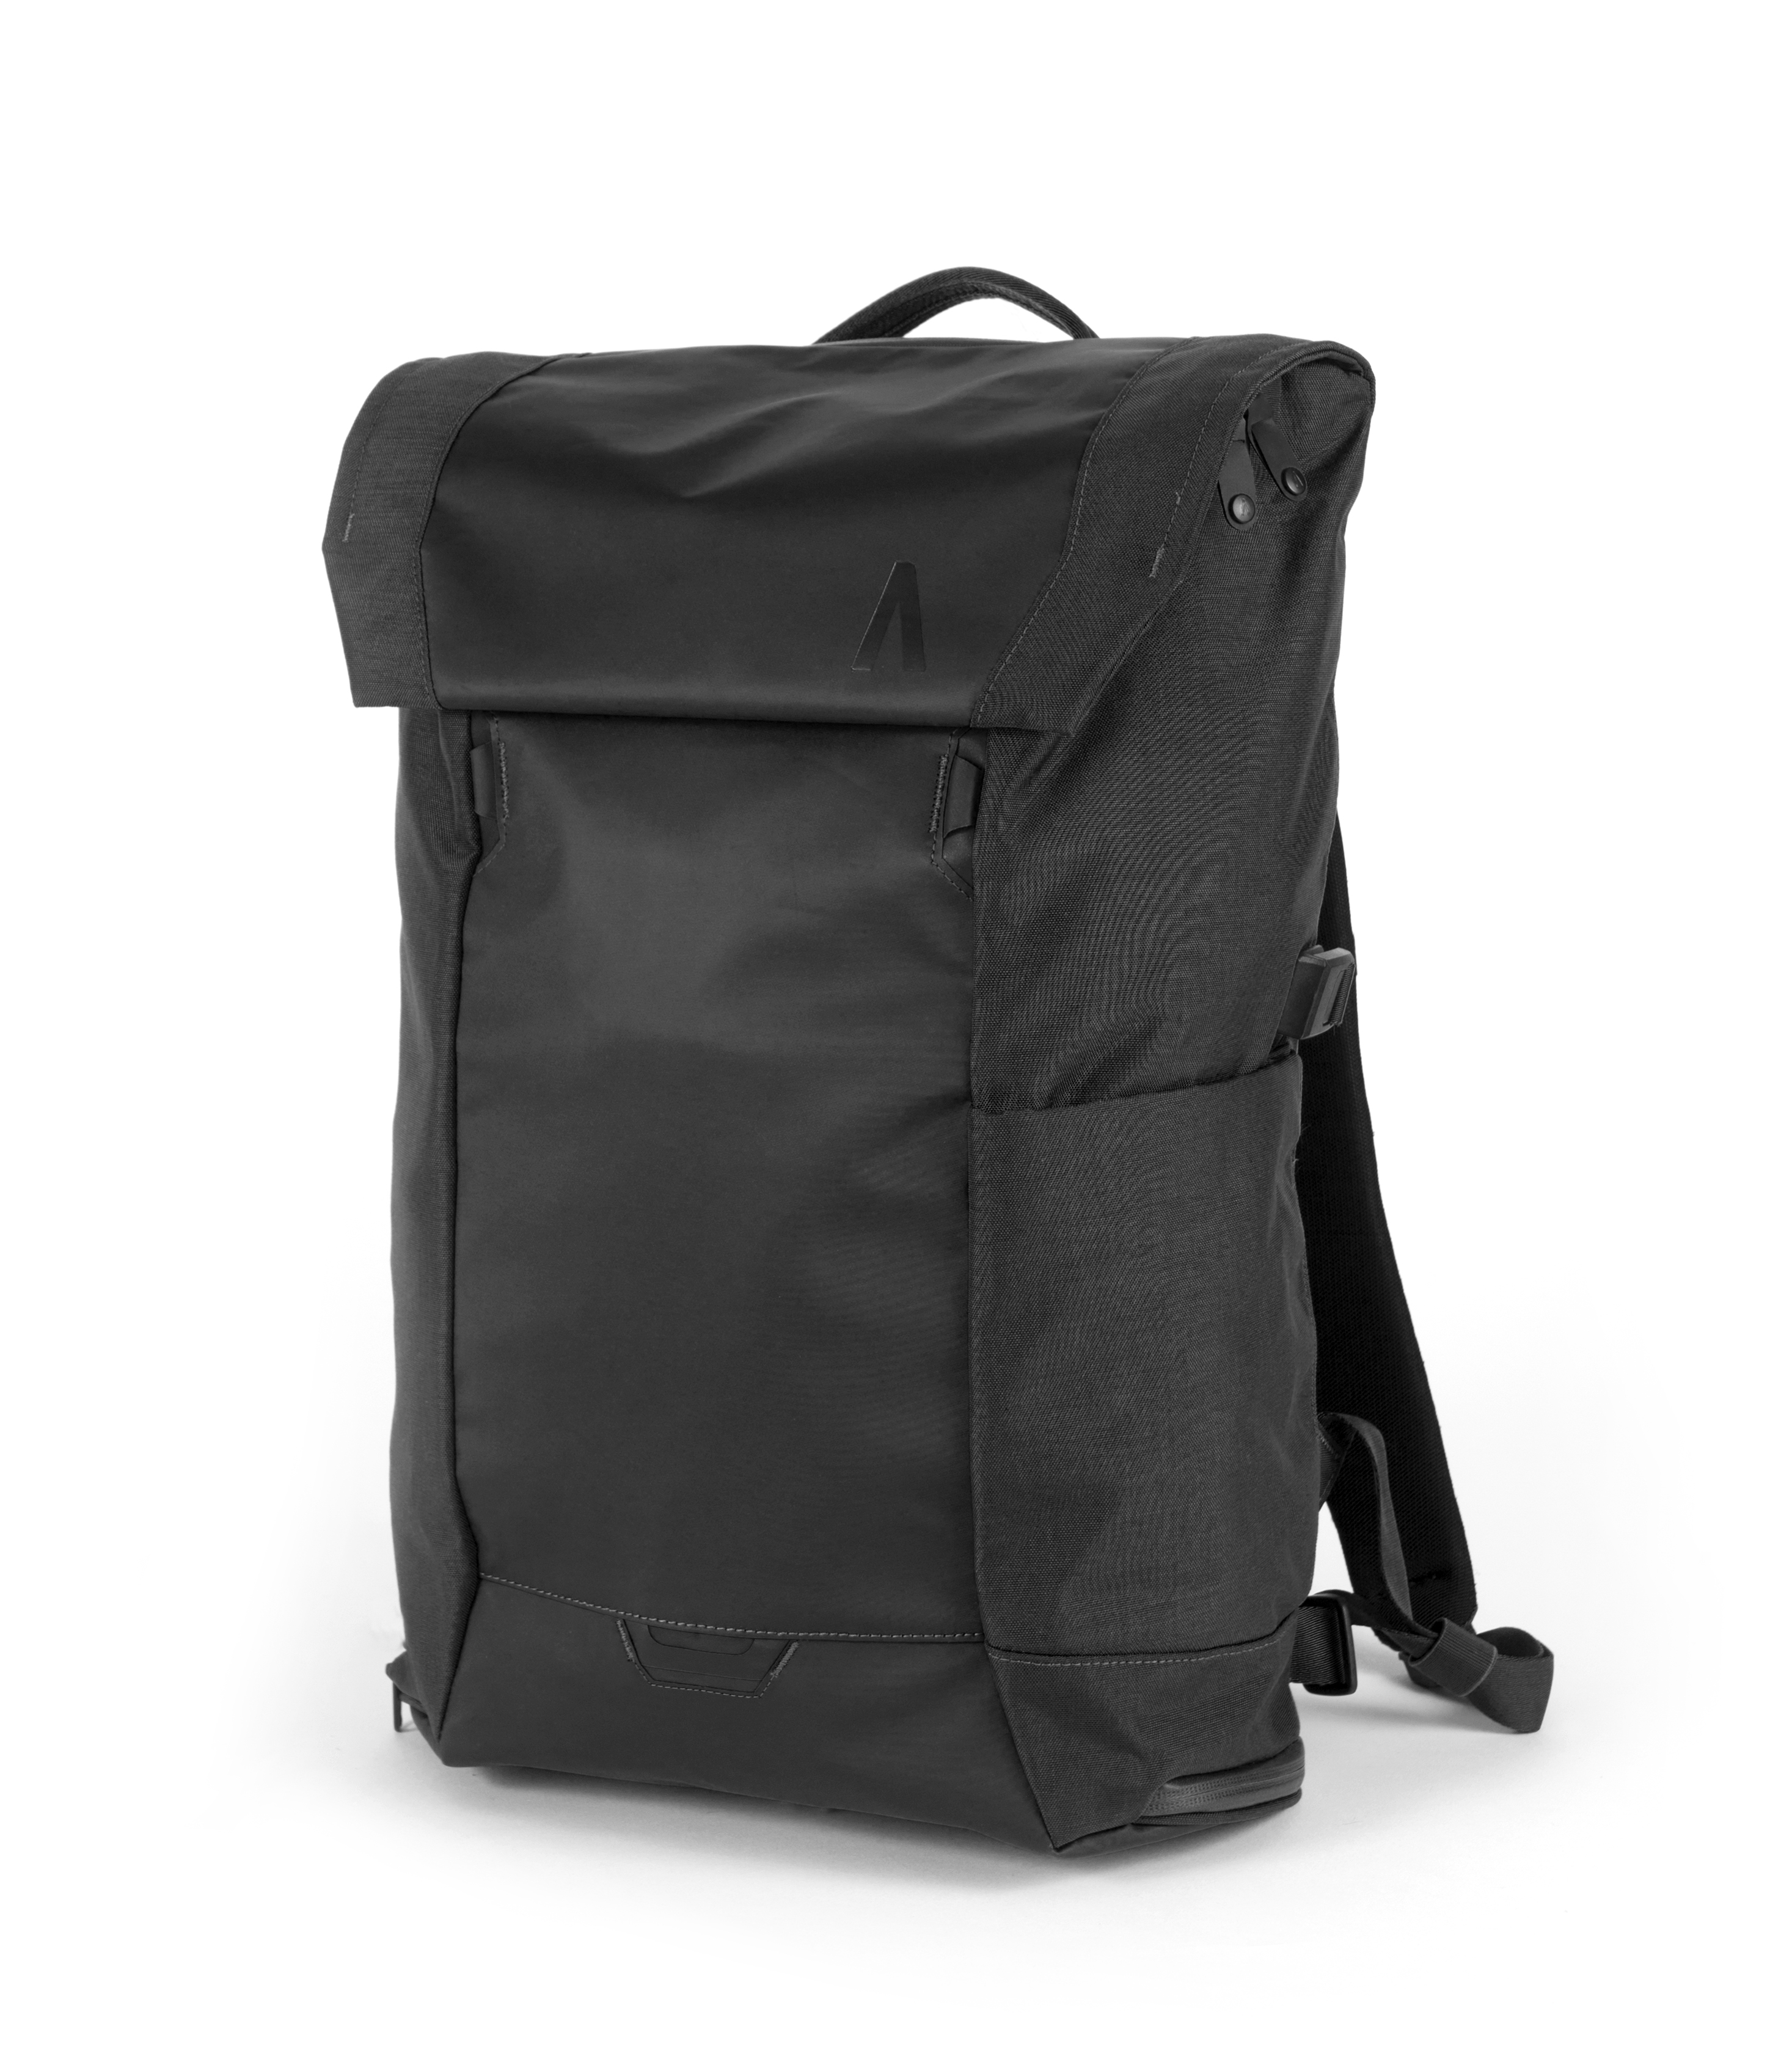 Boundary Errant backpack review: irresistible at $100 - The